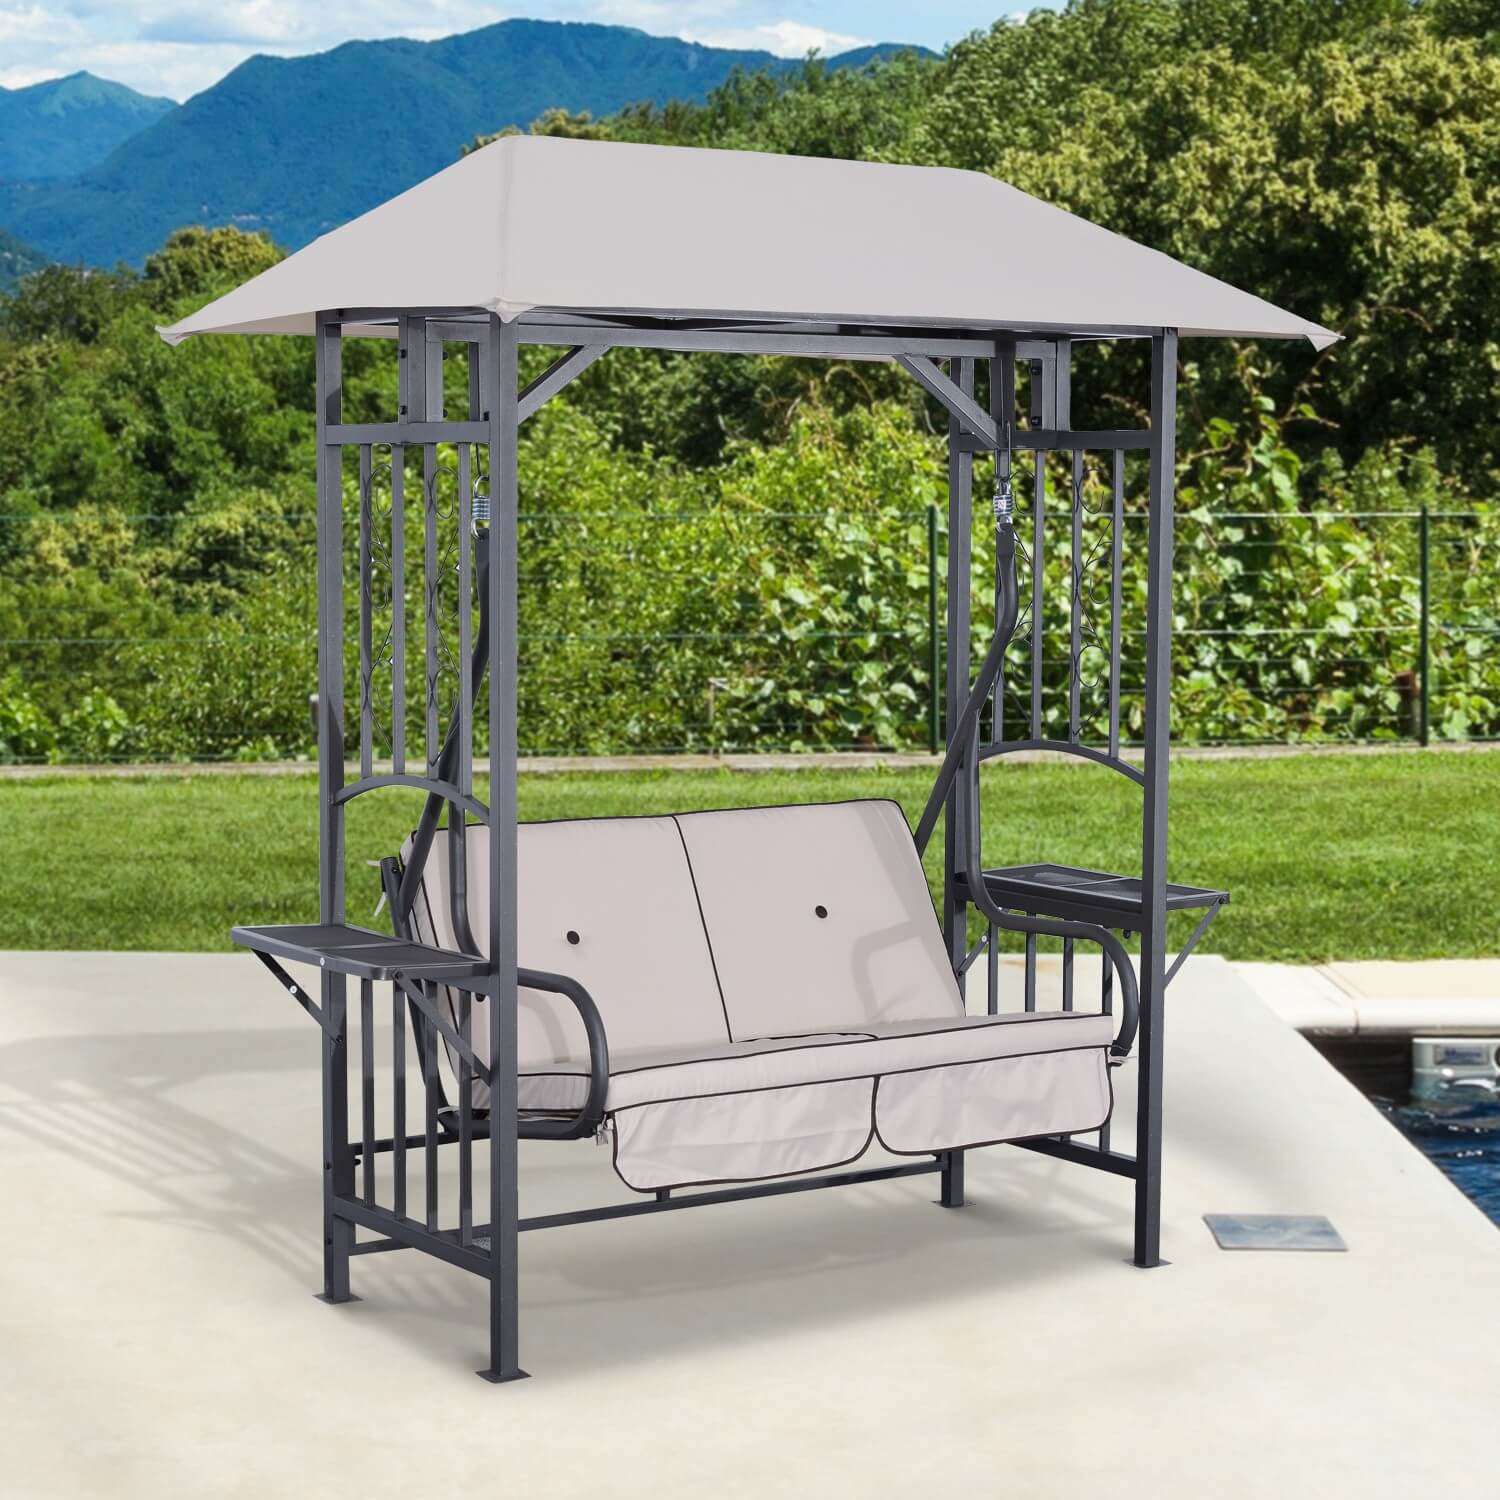 2 PERSON PATIO SWING WITH CANOPY METAL FRAME